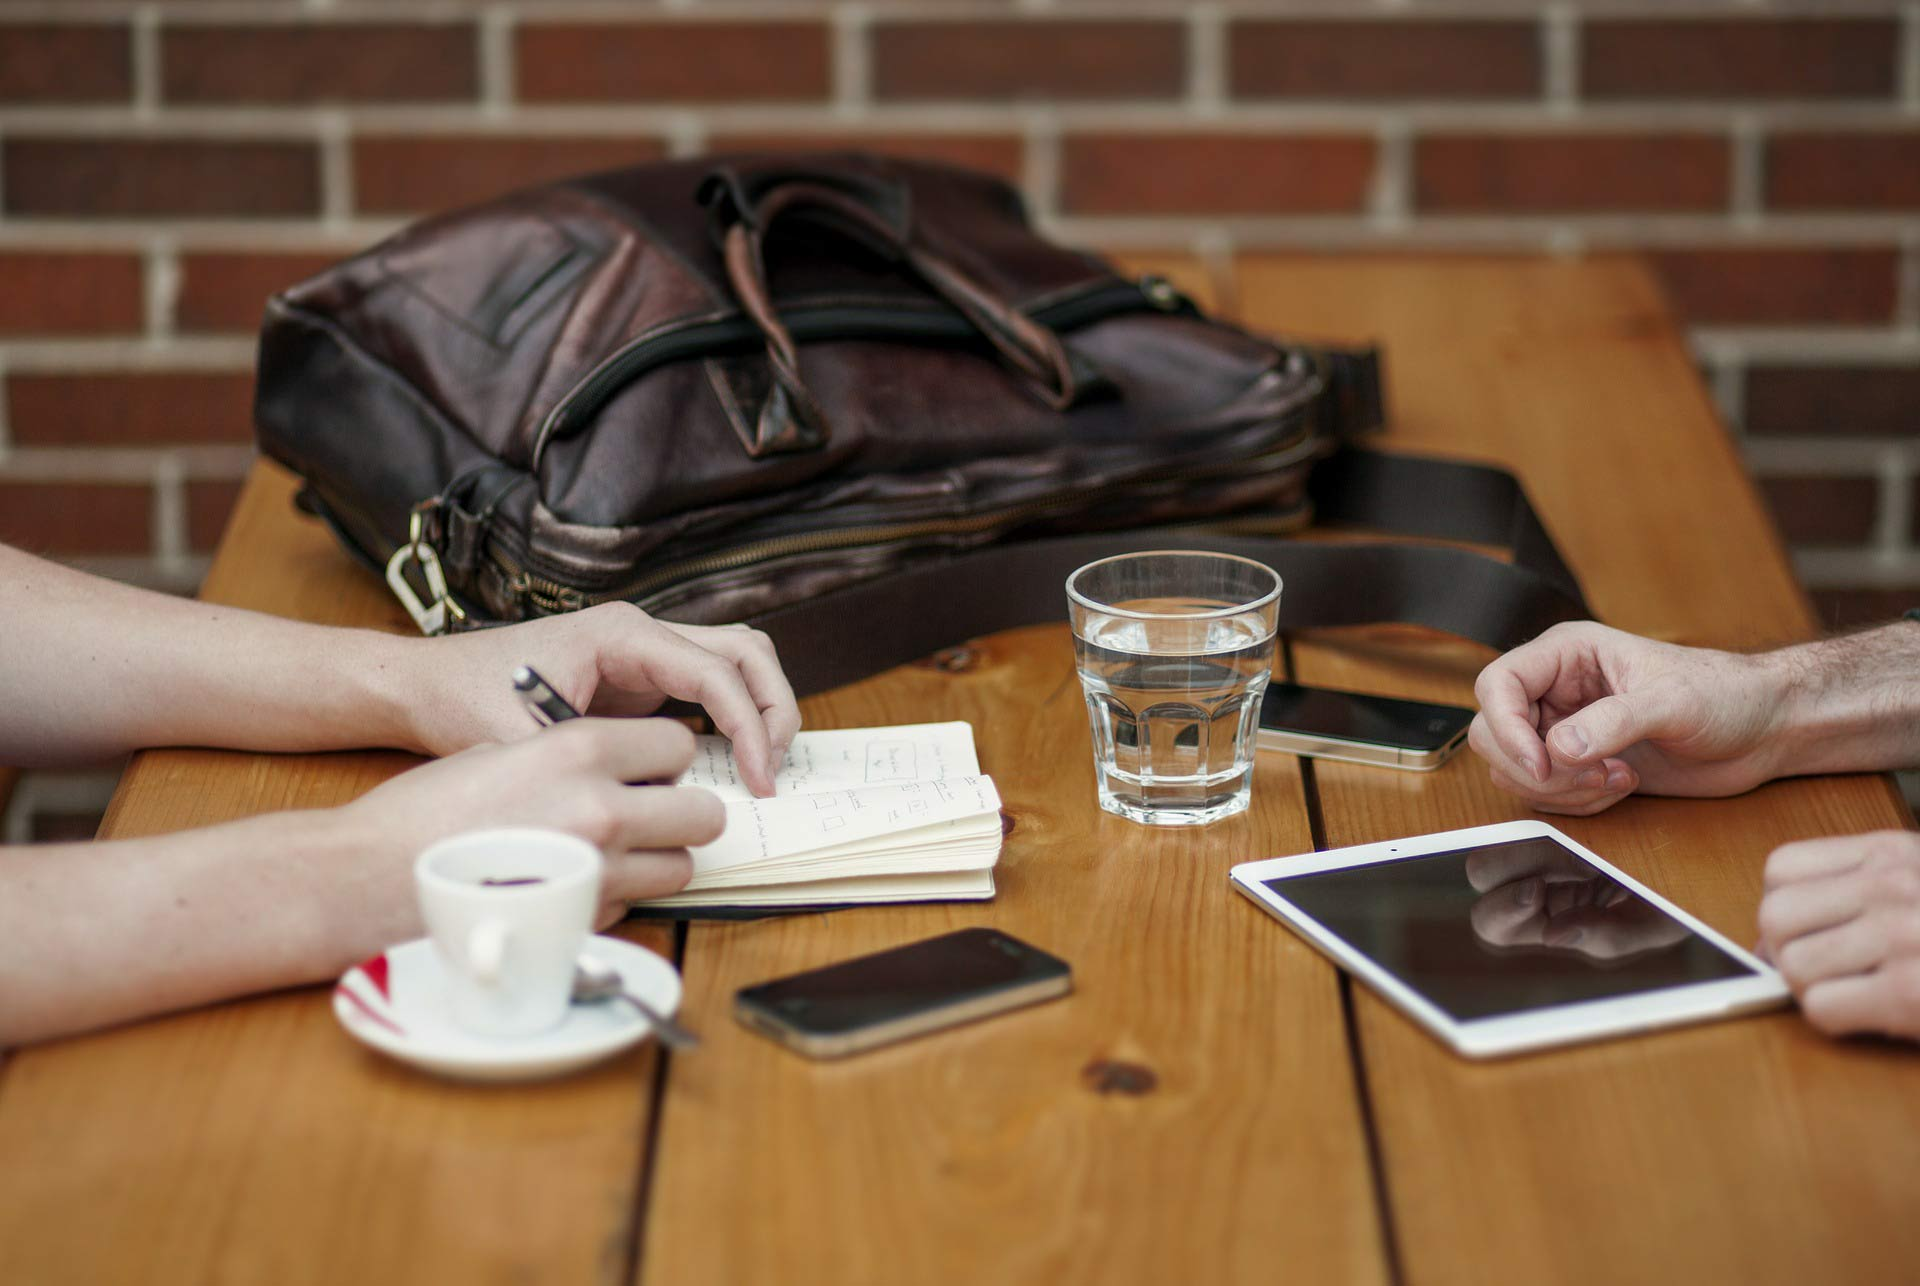 SEO agency meeting with client at coffee shop